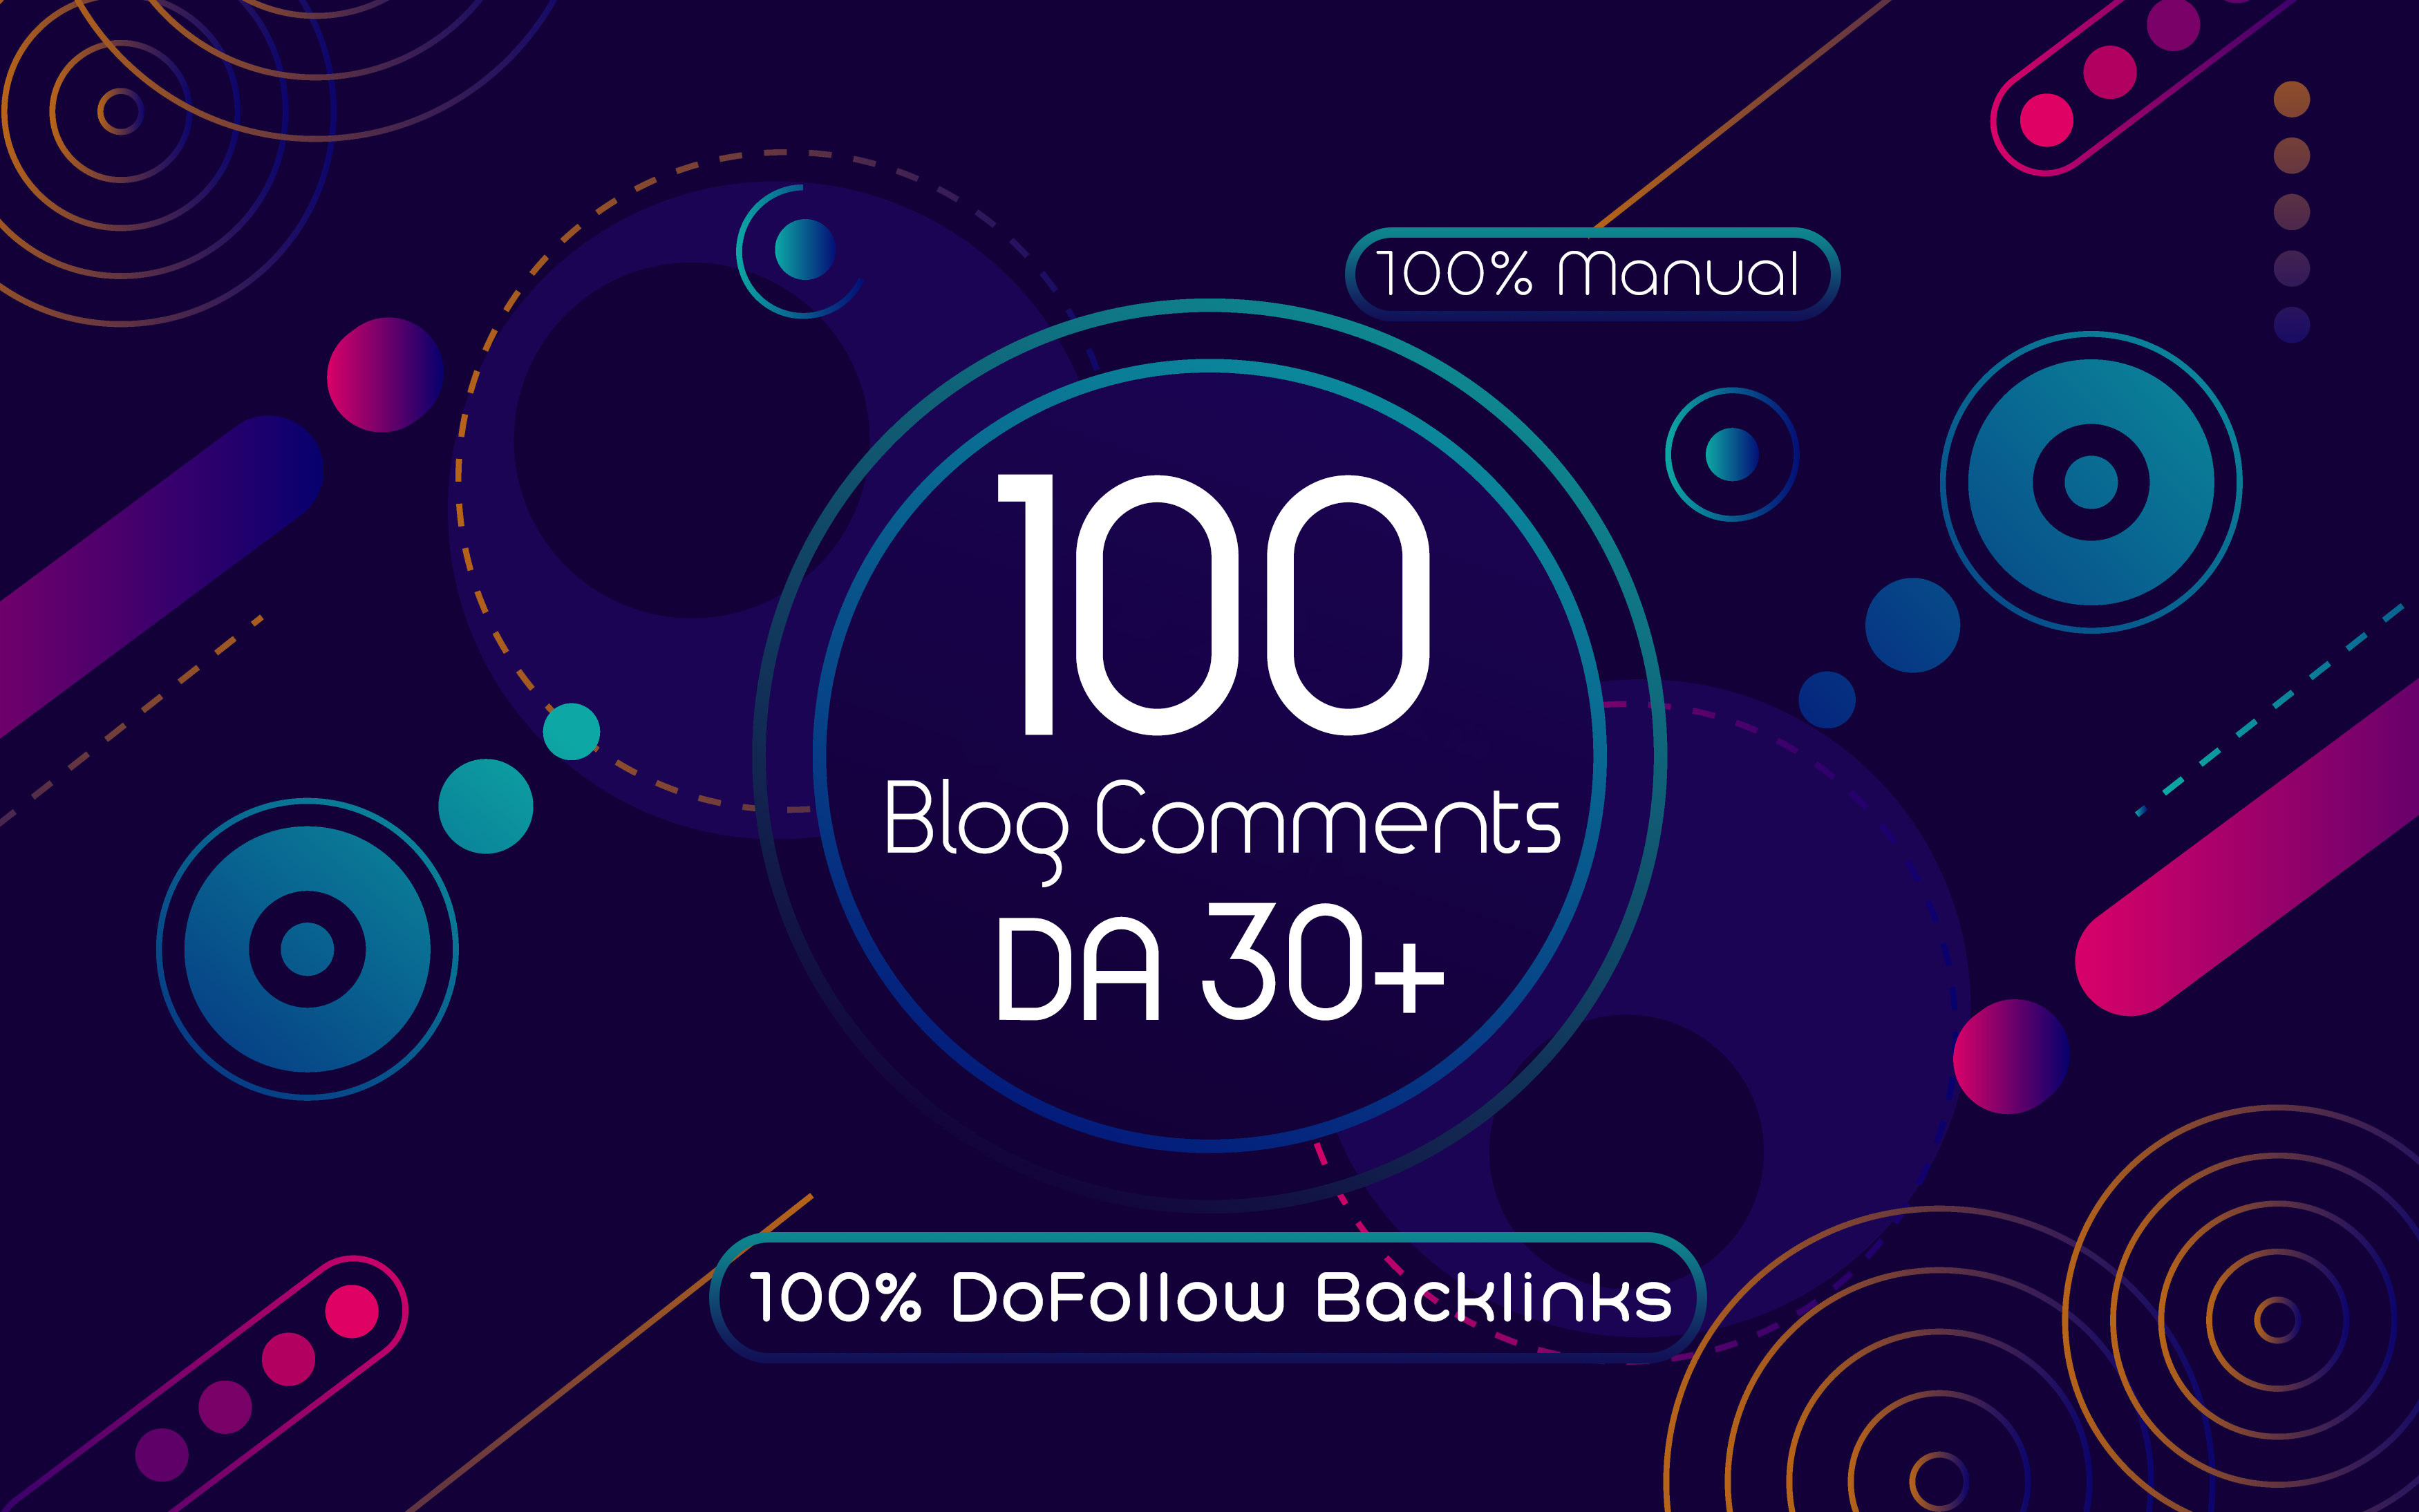 Get 100 High Quality Blog Comments DoFollow Backlinks On DA 30+